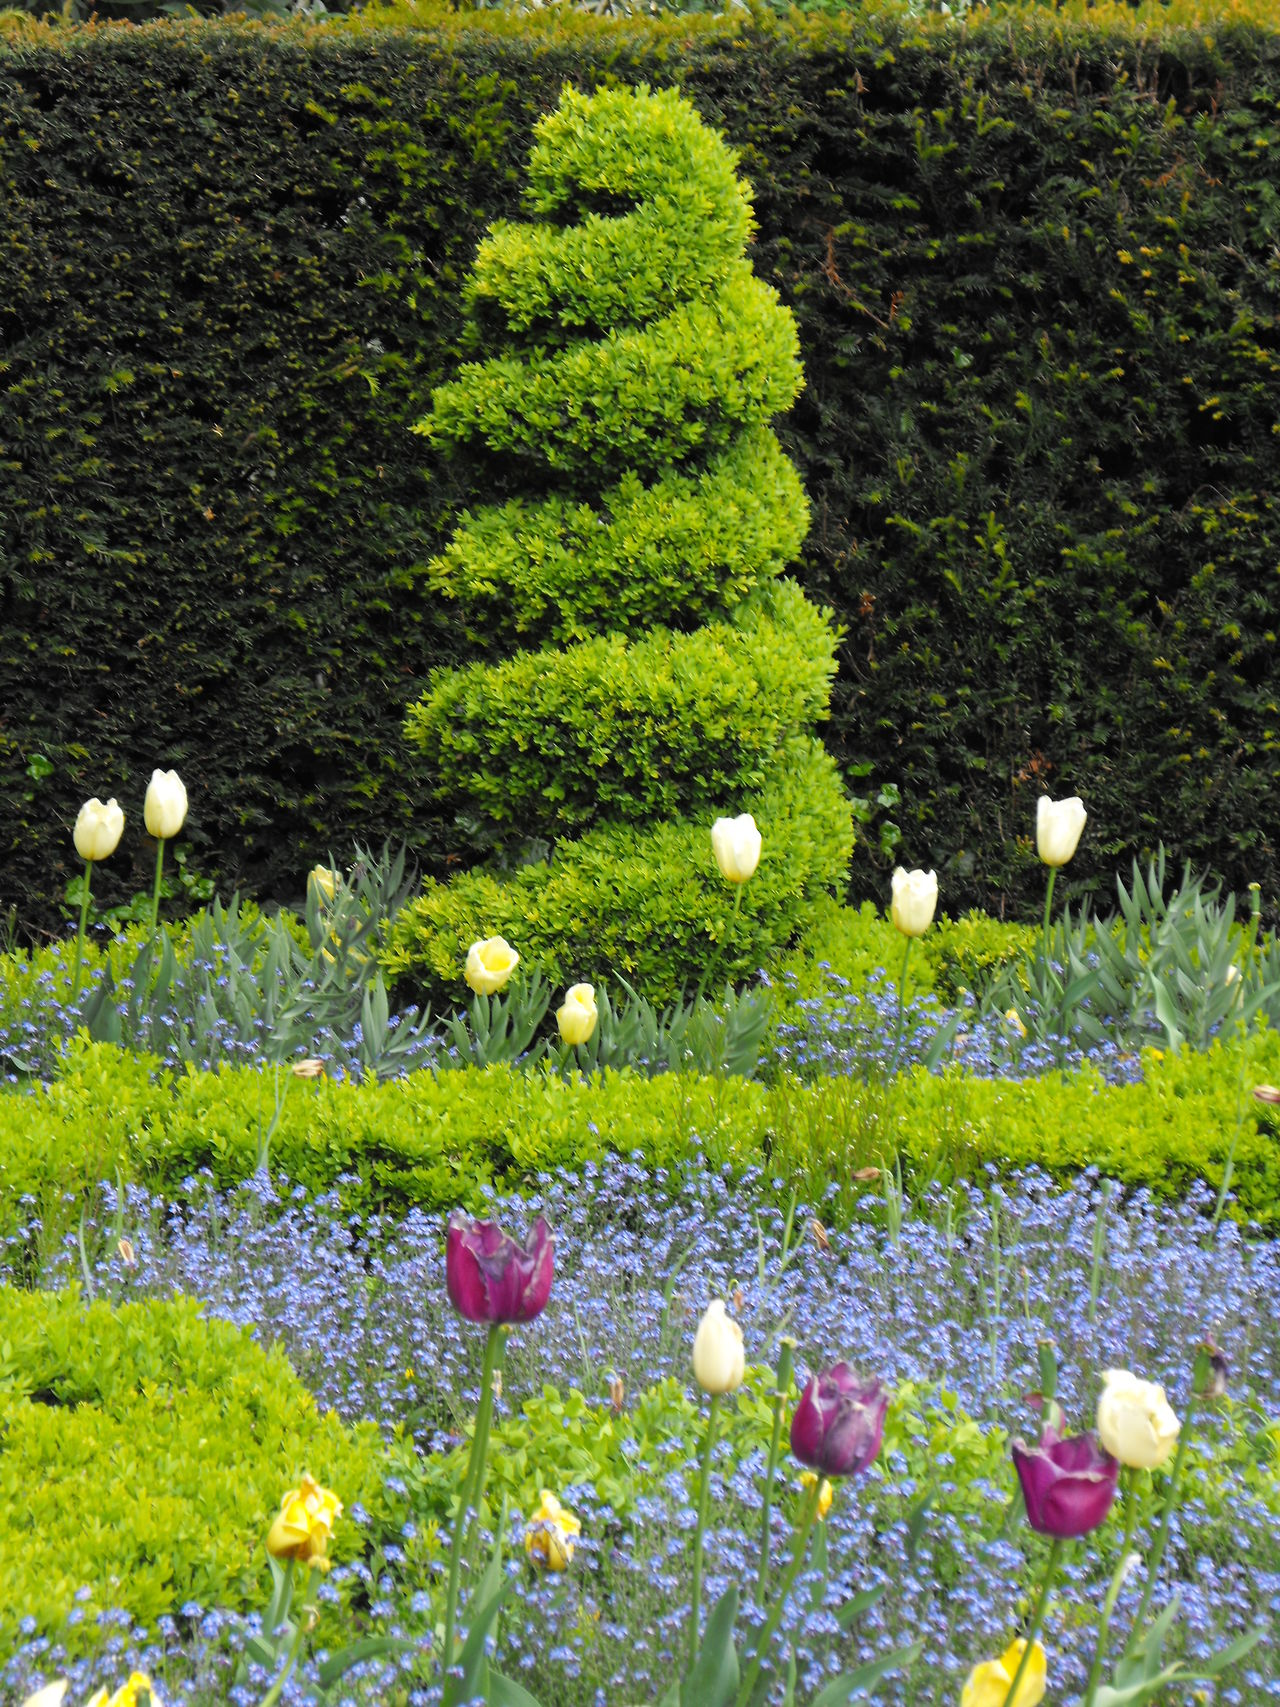 A view of a public garden from a few years ago Day Delicious Display Evergreen Flores Flower Forget Me Not Freshness Garden Garden Art Gardening Grass Green Color Growth Hedge Jardin No People Outdoors Plant Shape Spring Topiary Topiary Art Tulips Uk